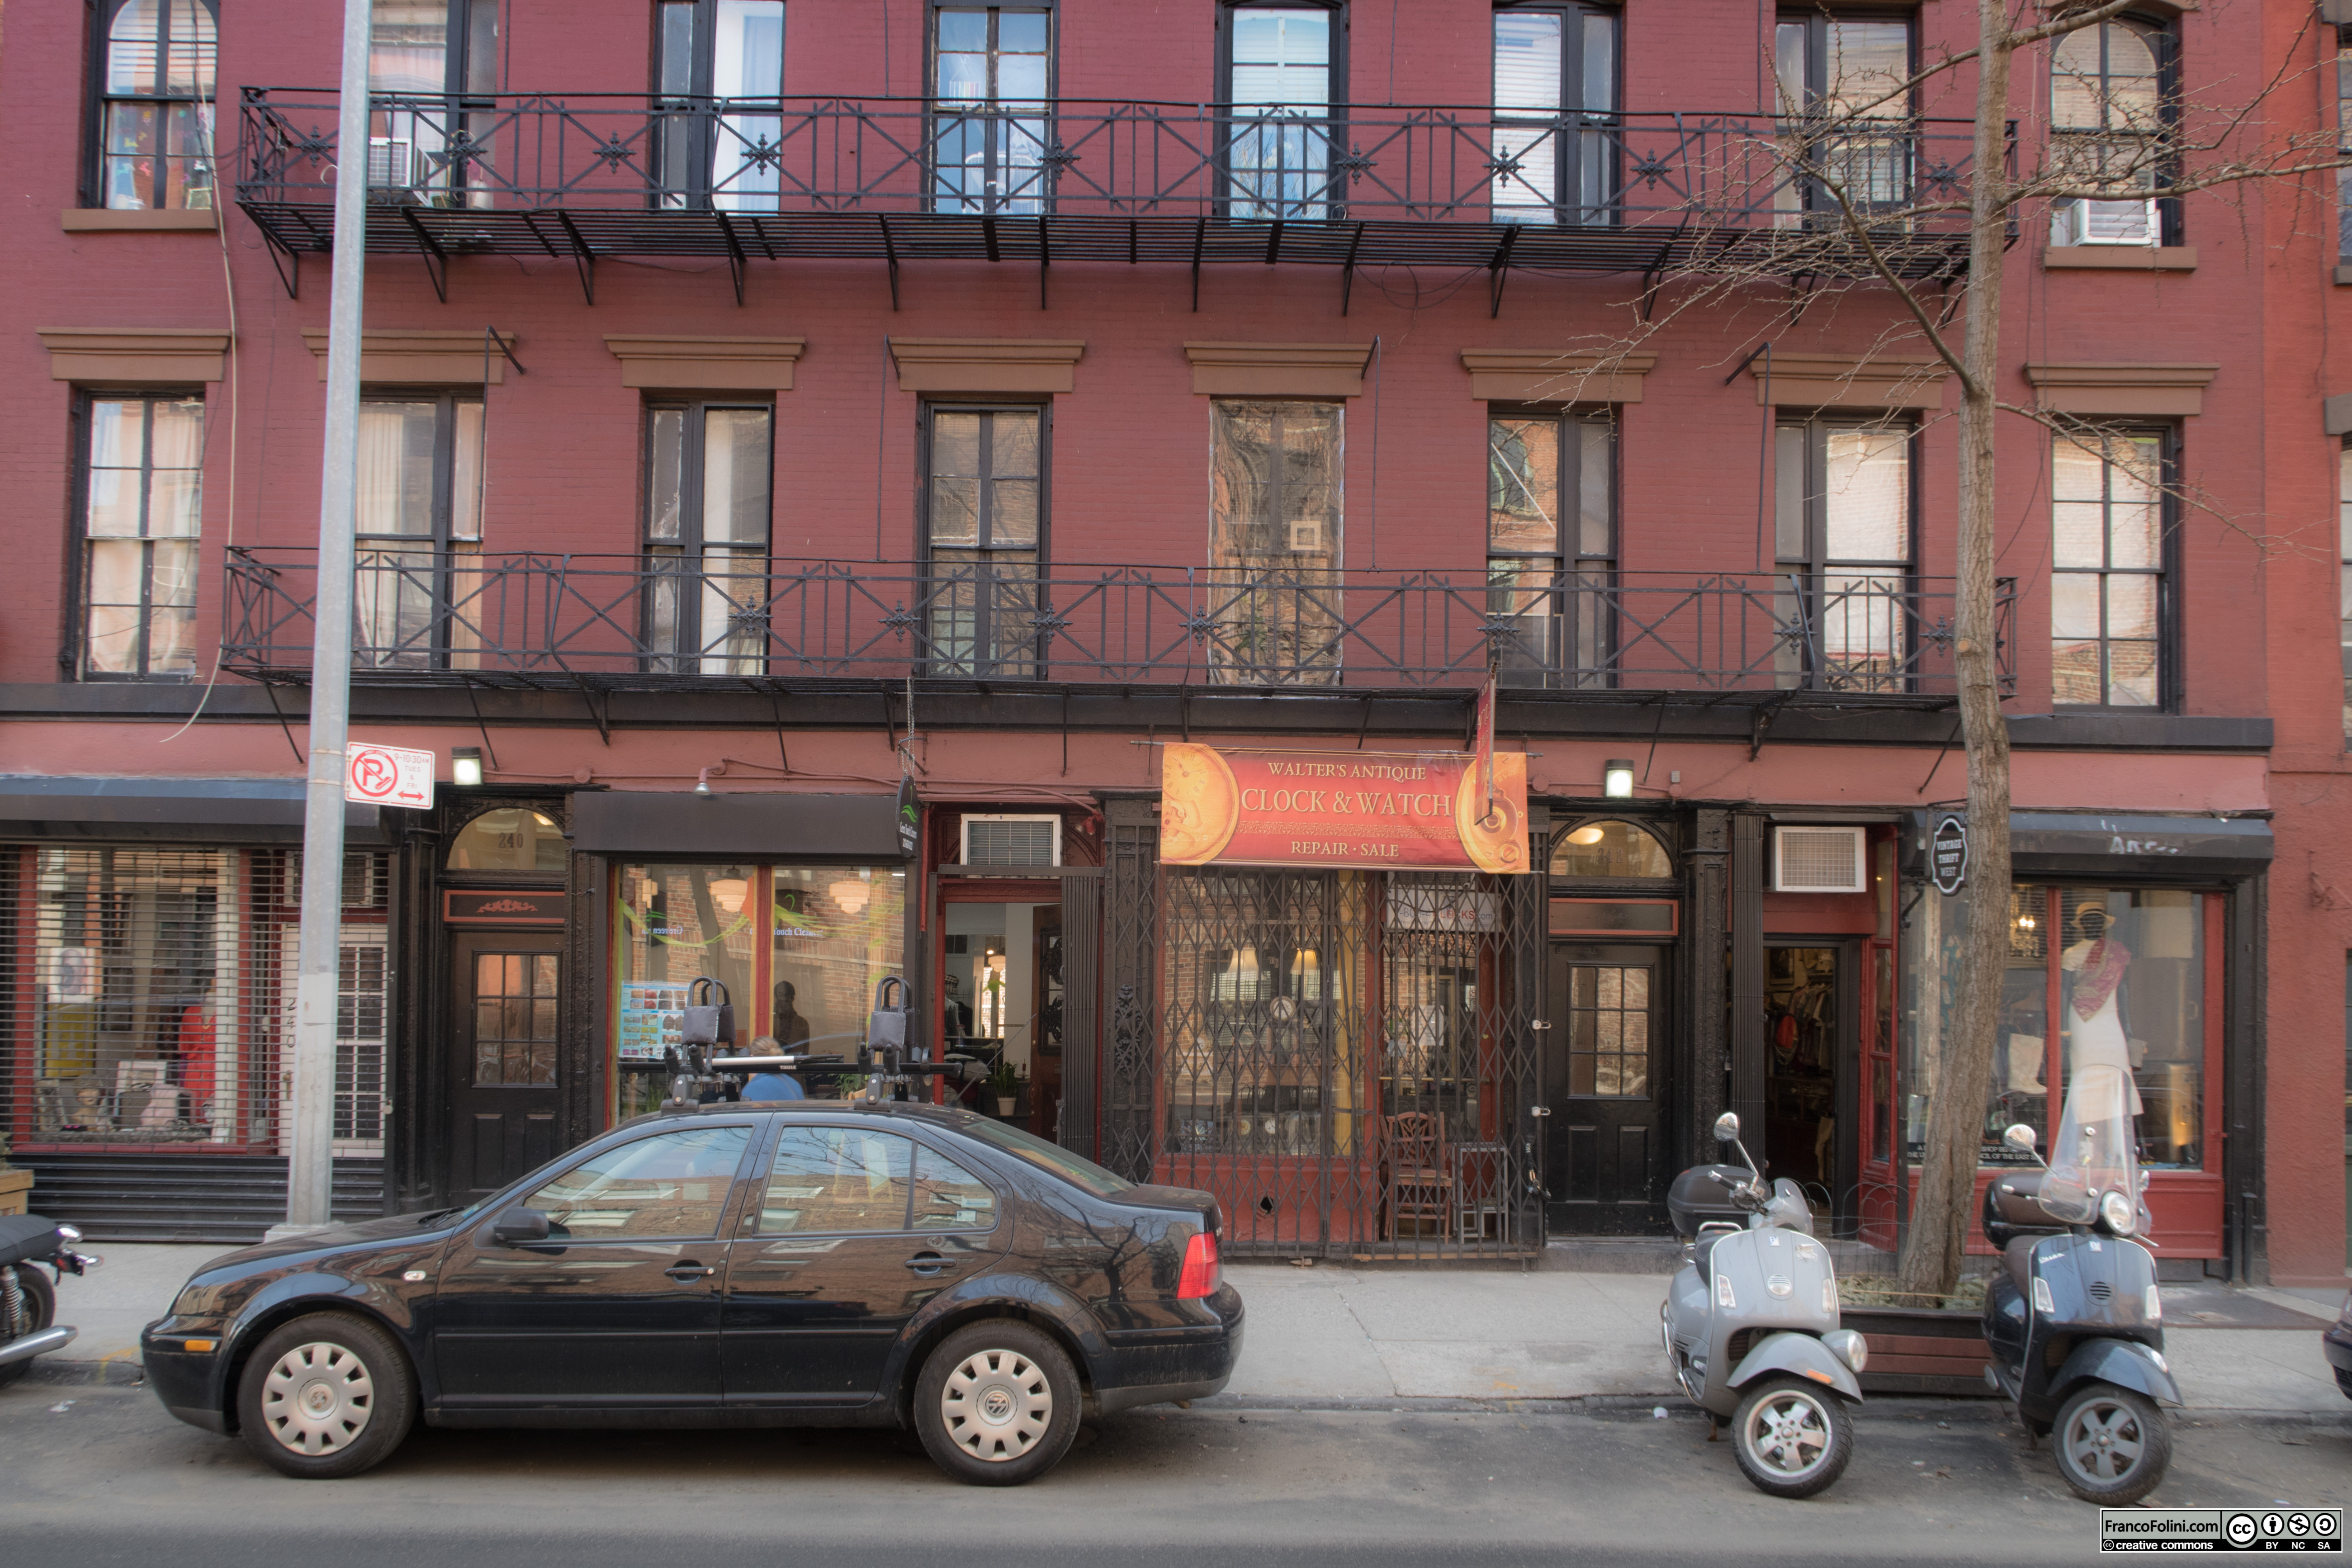 Old building and shops in the in West Village, NYC